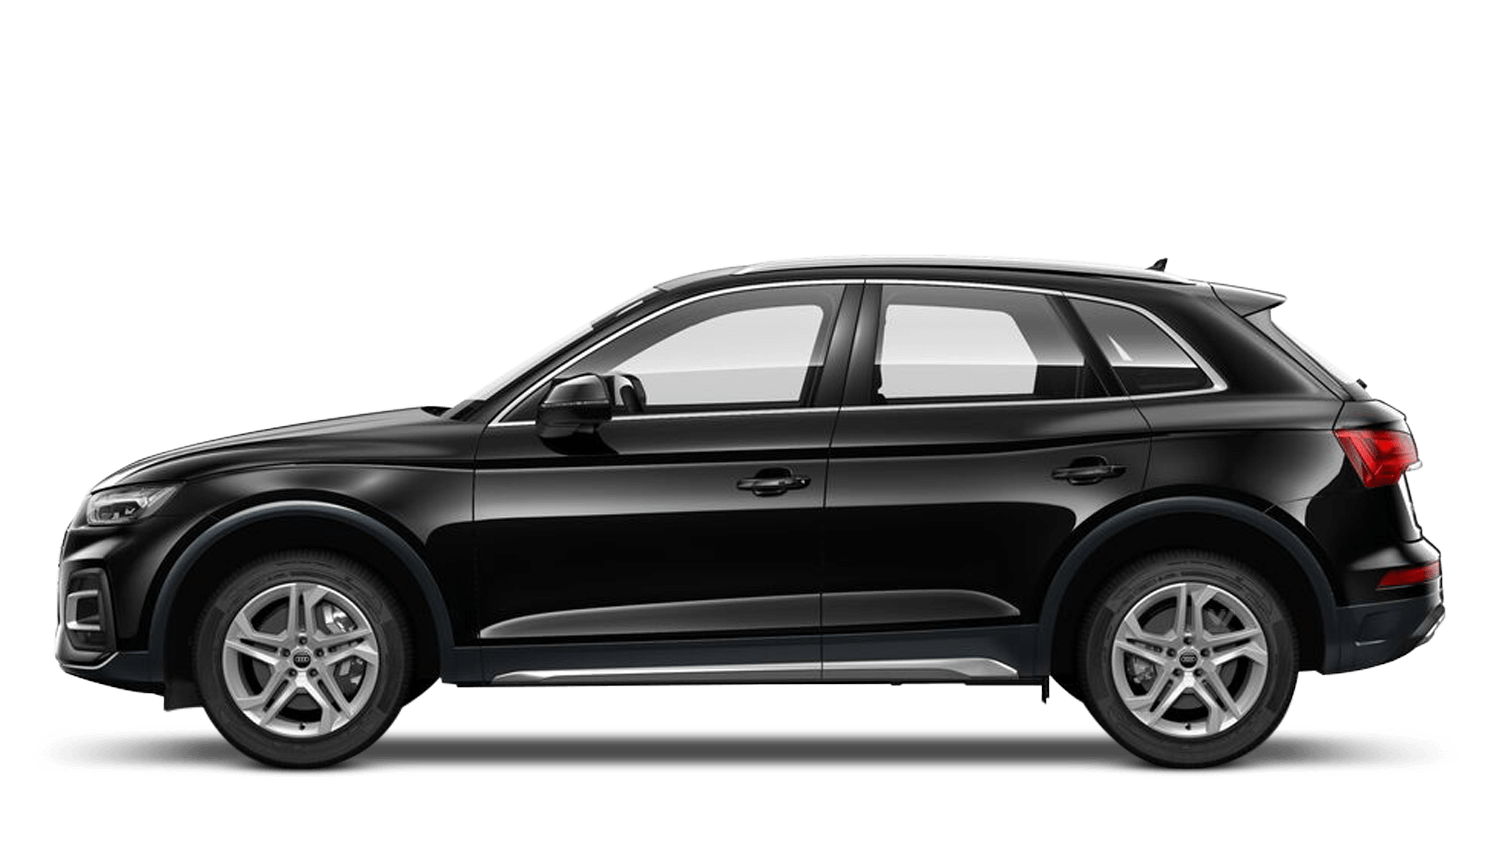 Mythos Black (Metallic) Audi Q5